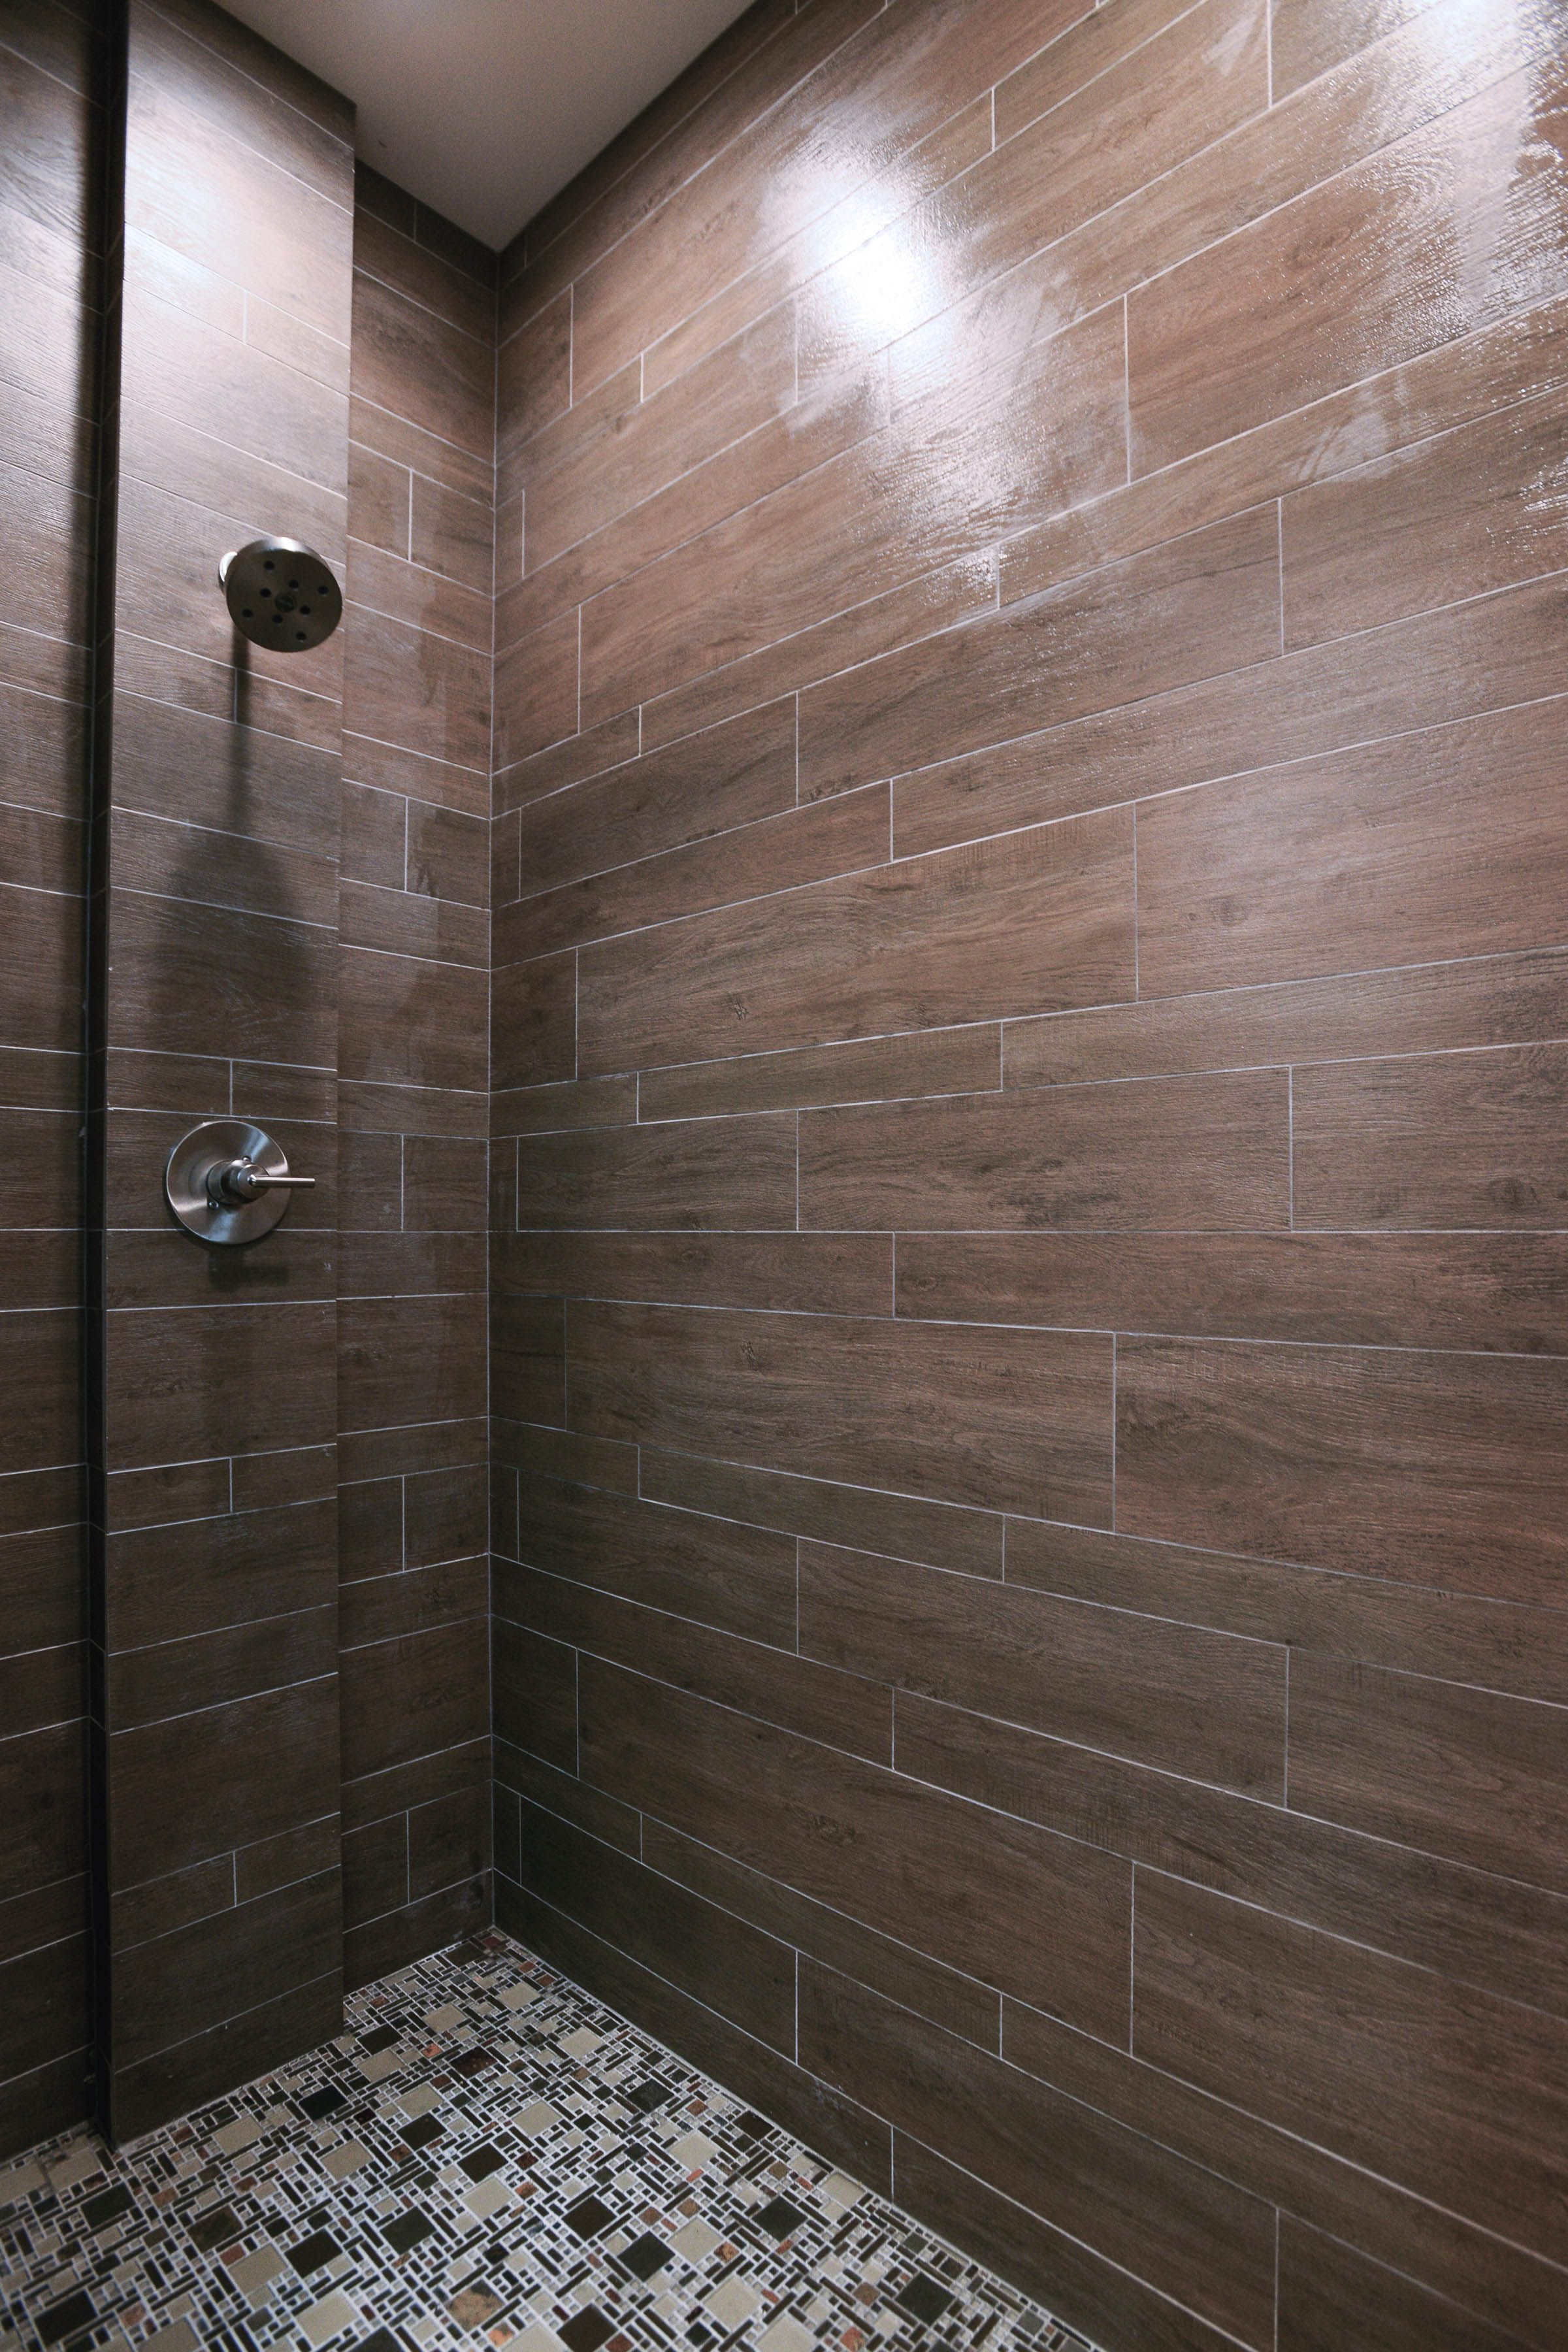 Briarwood mocha faux wood shower tile by the tile shop bath briarwood mocha faux wood shower tile by the tile shop dailygadgetfo Images